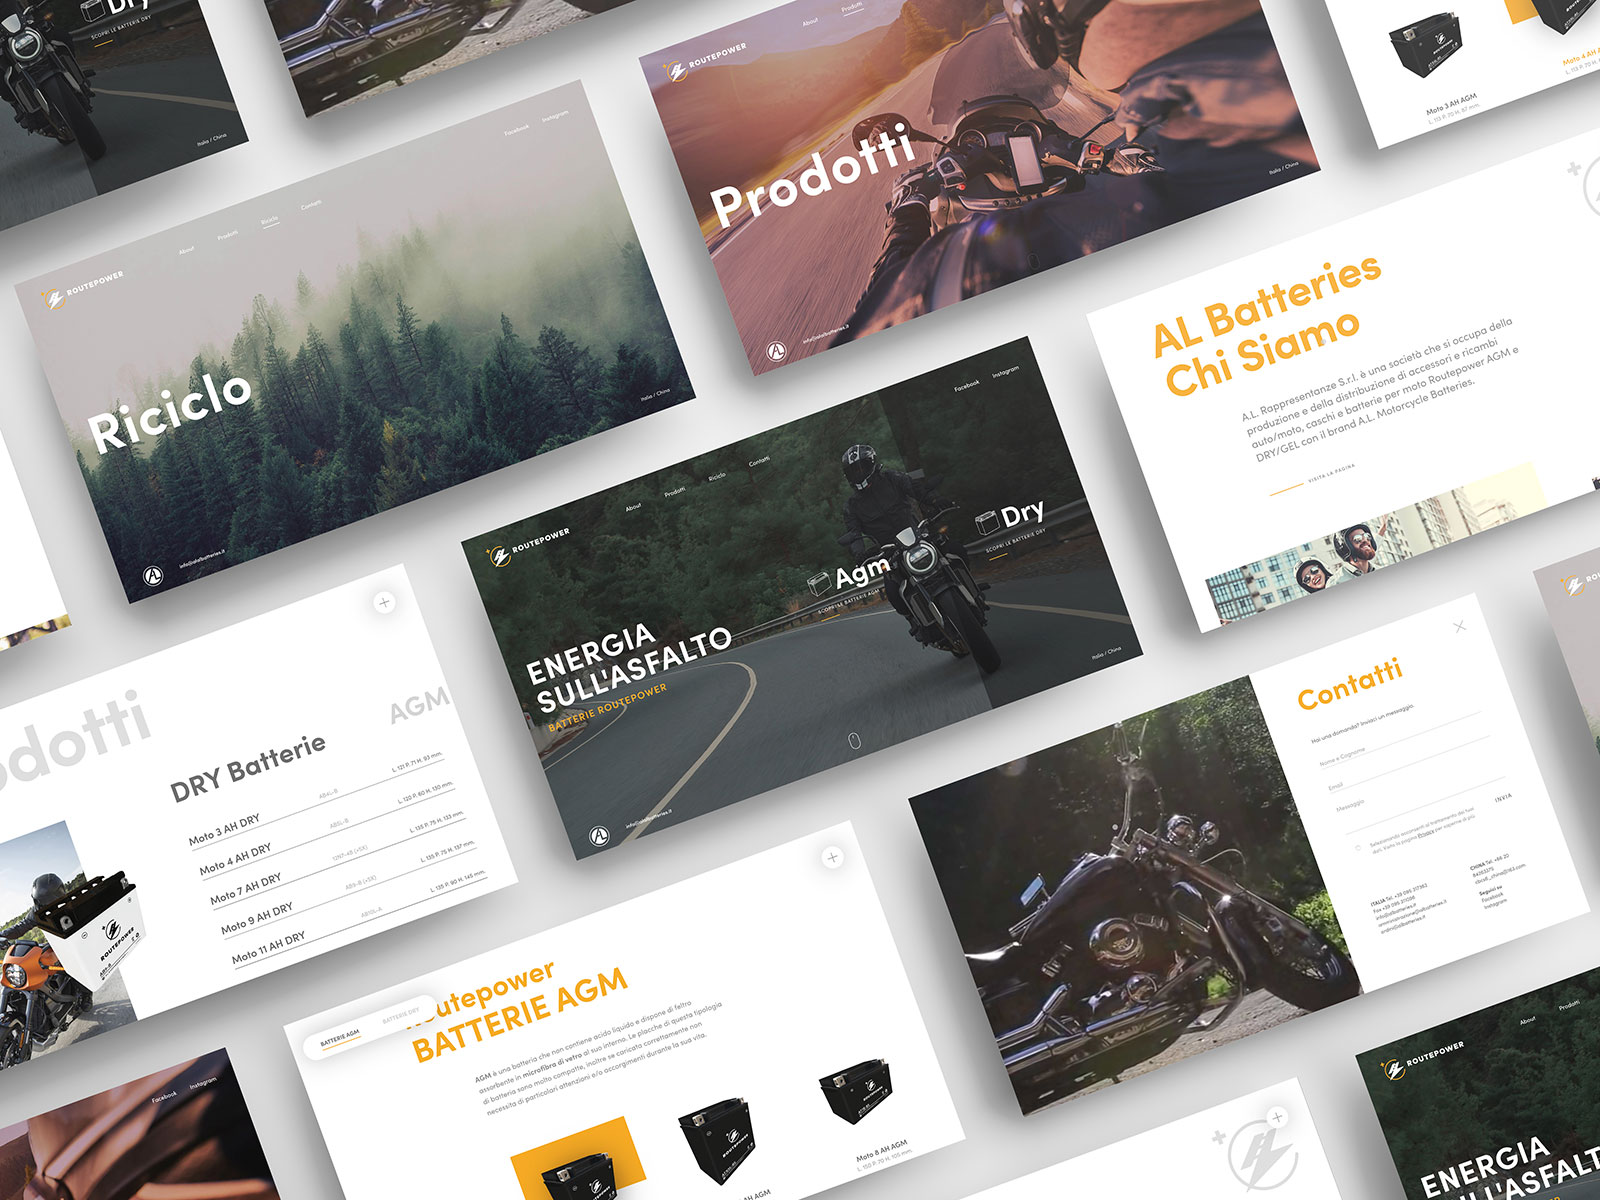 Studio K95 – Routepower - Web Design